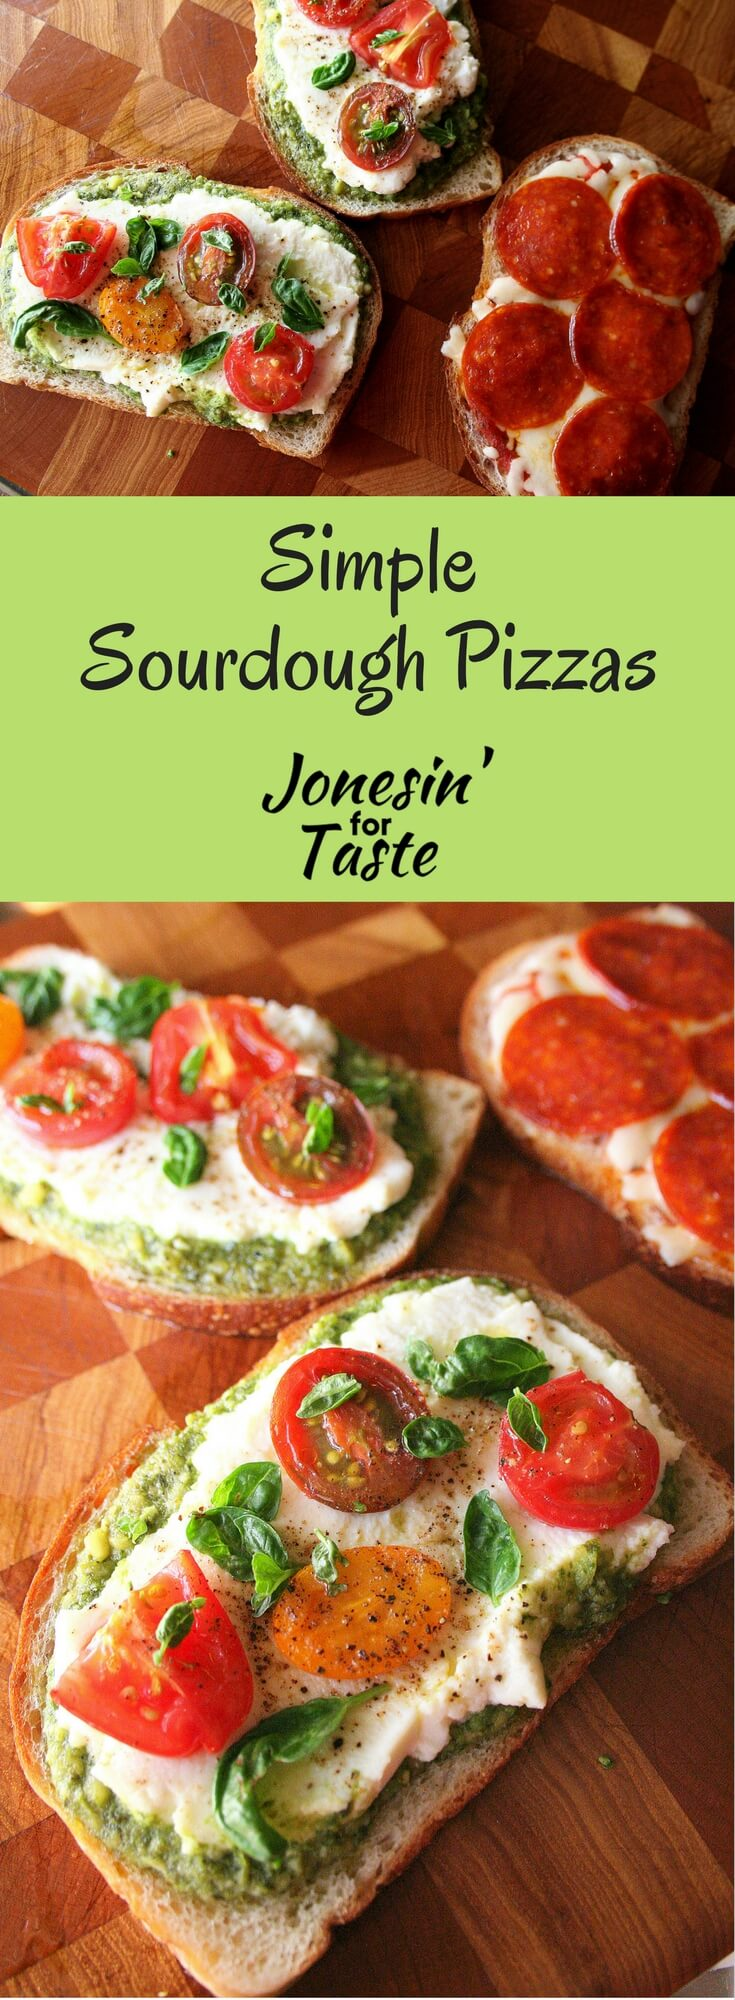 Simple Sourdough Pizzas top sourdough bread with your favorite pizza toppings. It cooks quickly and is the perfect solution for a busy weeknight pizza craving. #easypizzarecipes #easymeals